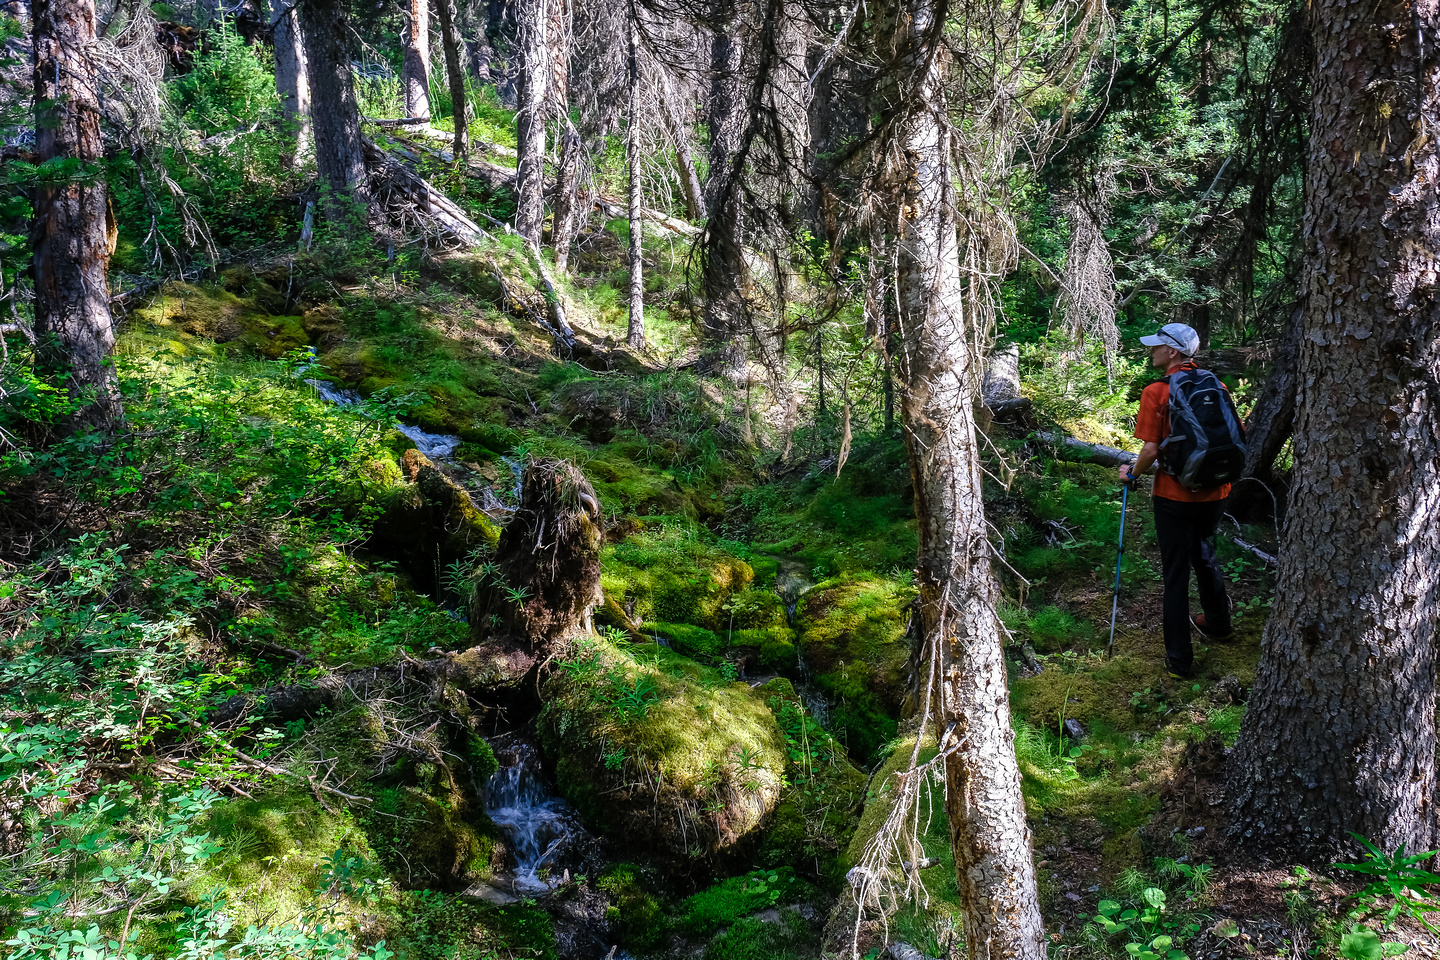 Hiking up the access creek. A mix of forest, bushwhacking, deadfall and wet feet.